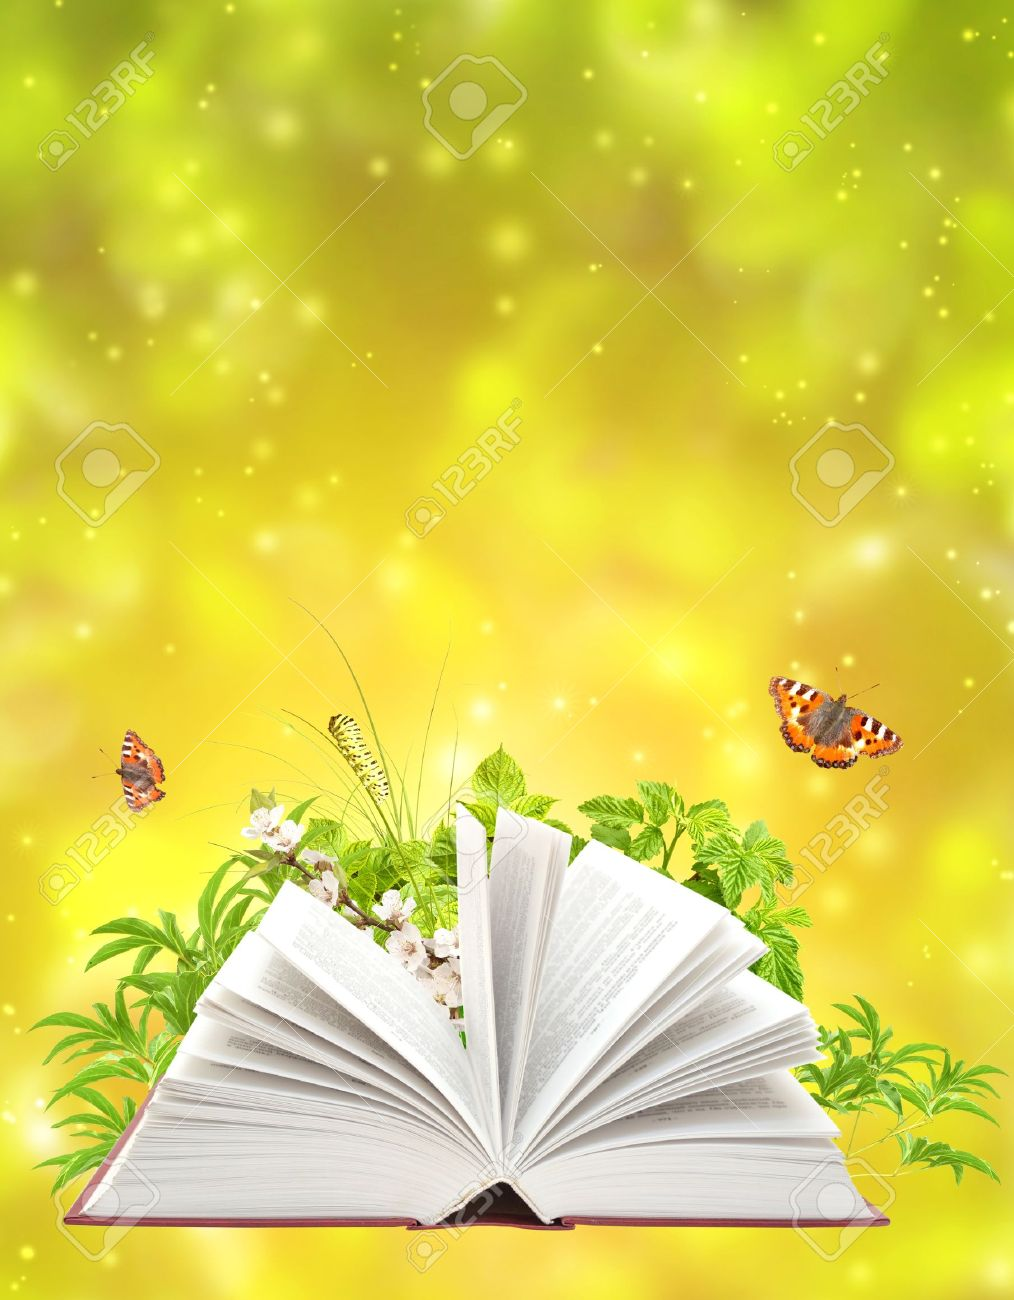 Book Of Nature On Green Backgr...